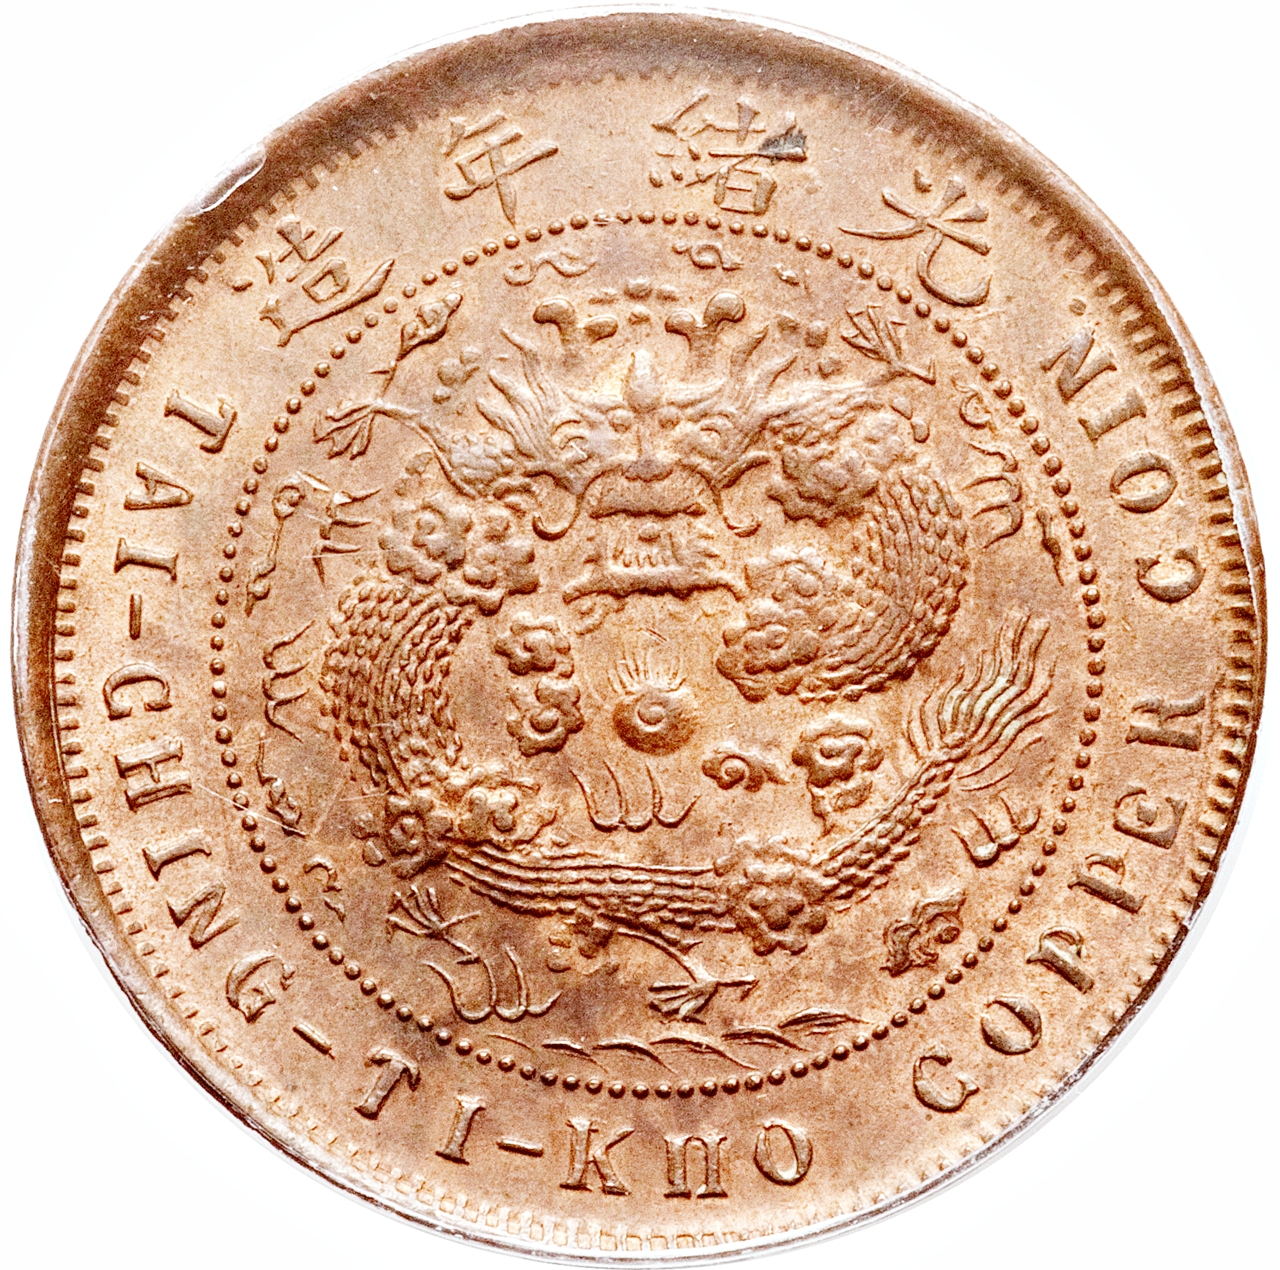 Tai ching ti kuo copper coin сколько стоит 1 рубль 1870 1970